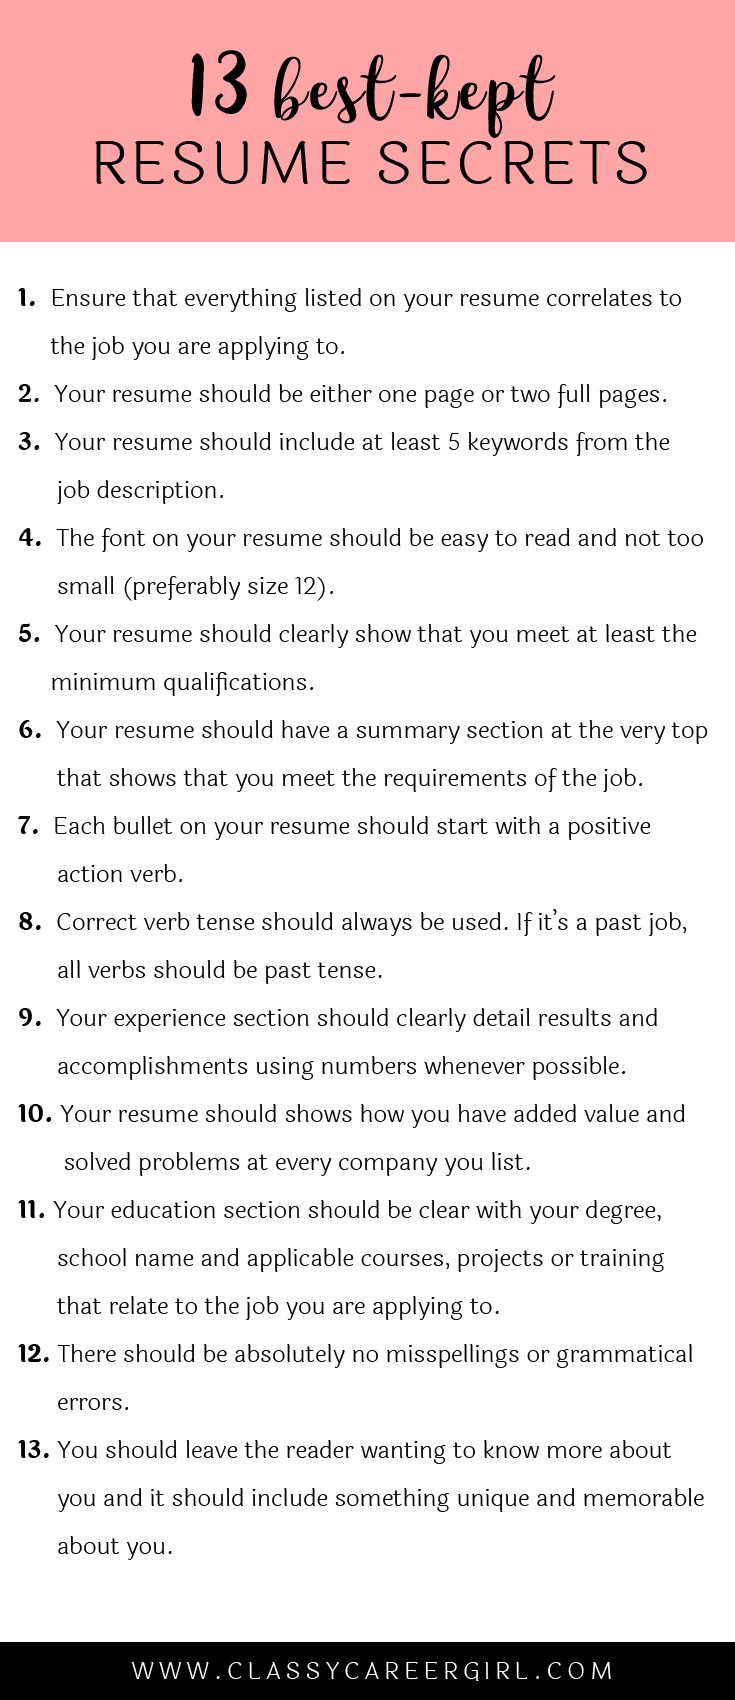 Opposenewapstandardsus  Stunning  Ideas About Resume On Pinterest  Cv Format Resume Cv And  With Marvelous Some Hiring Managers Will Toss Your Resume Out If You Dont Know These  With Endearing Dental Assistant Resumes Also Communication Resume In Addition Create Your Own Resume And Monster Resume Builder As Well As Entry Level Nurse Resume Additionally Samples Of Cover Letters For Resume From Pinterestcom With Opposenewapstandardsus  Marvelous  Ideas About Resume On Pinterest  Cv Format Resume Cv And  With Endearing Some Hiring Managers Will Toss Your Resume Out If You Dont Know These  And Stunning Dental Assistant Resumes Also Communication Resume In Addition Create Your Own Resume From Pinterestcom